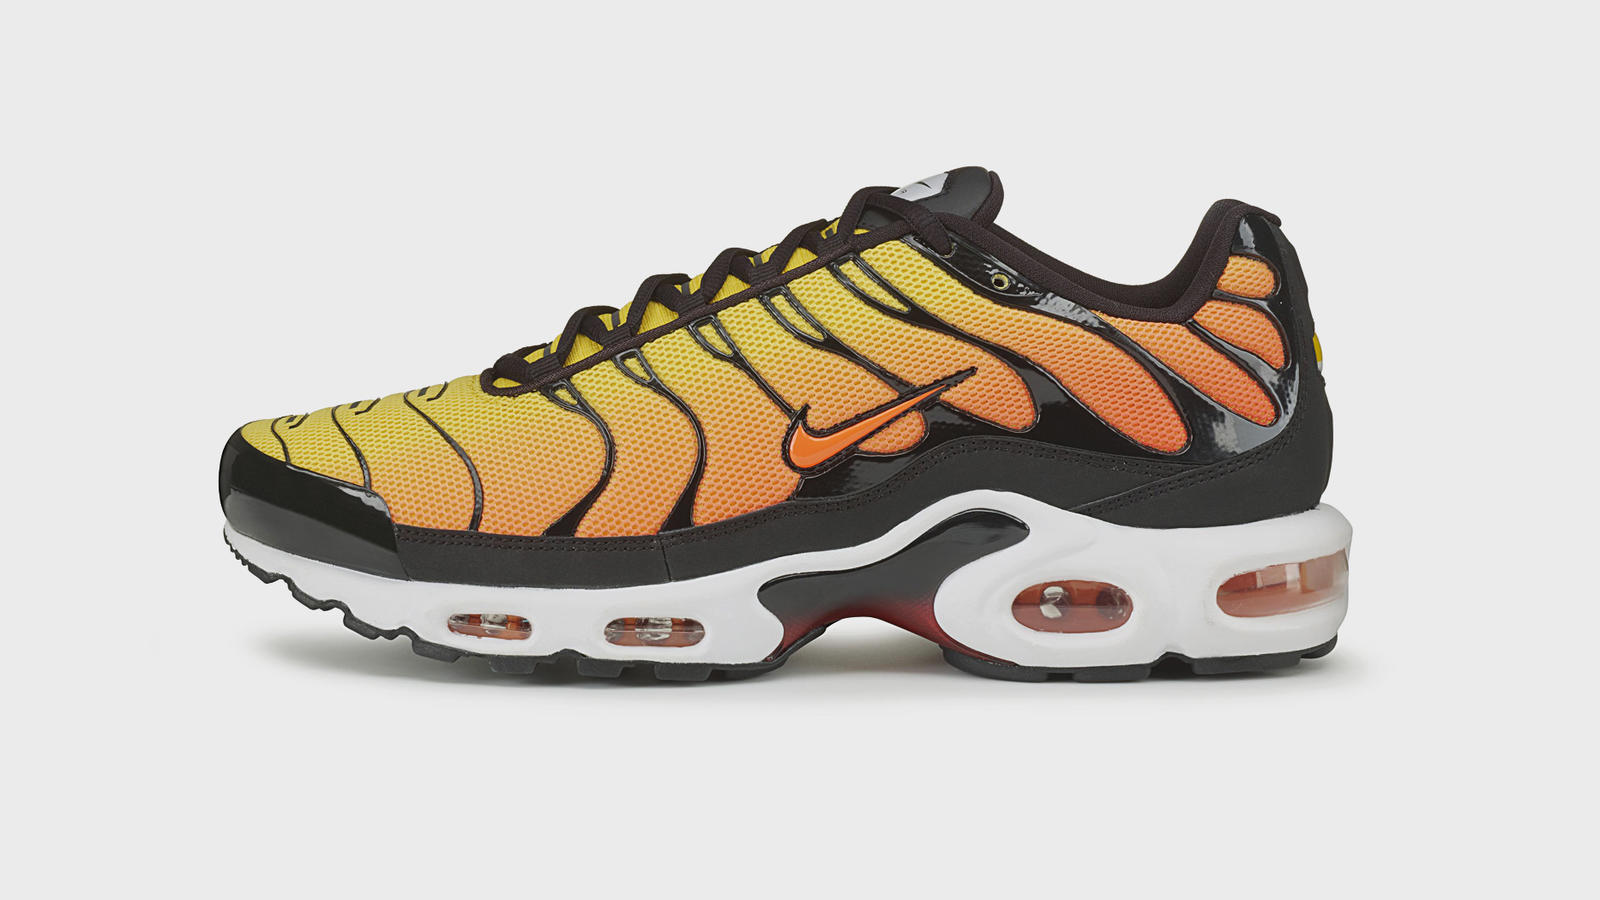 detailed look 75e9e b15bc The Untold Story of the Nike Air Max Plus 23